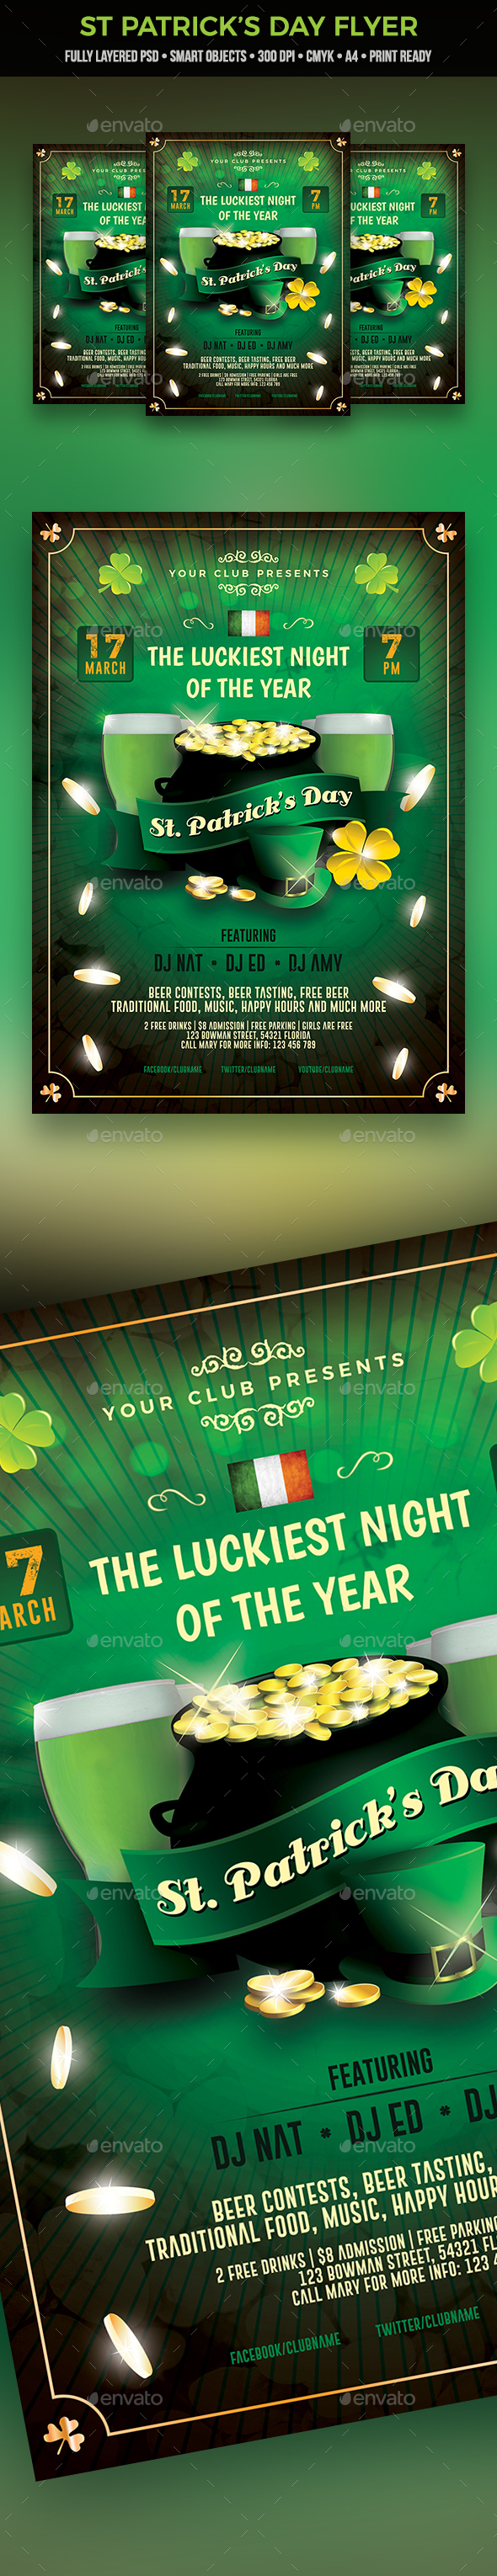 St Patricks Day Party Flyer - Clubs & Parties Events